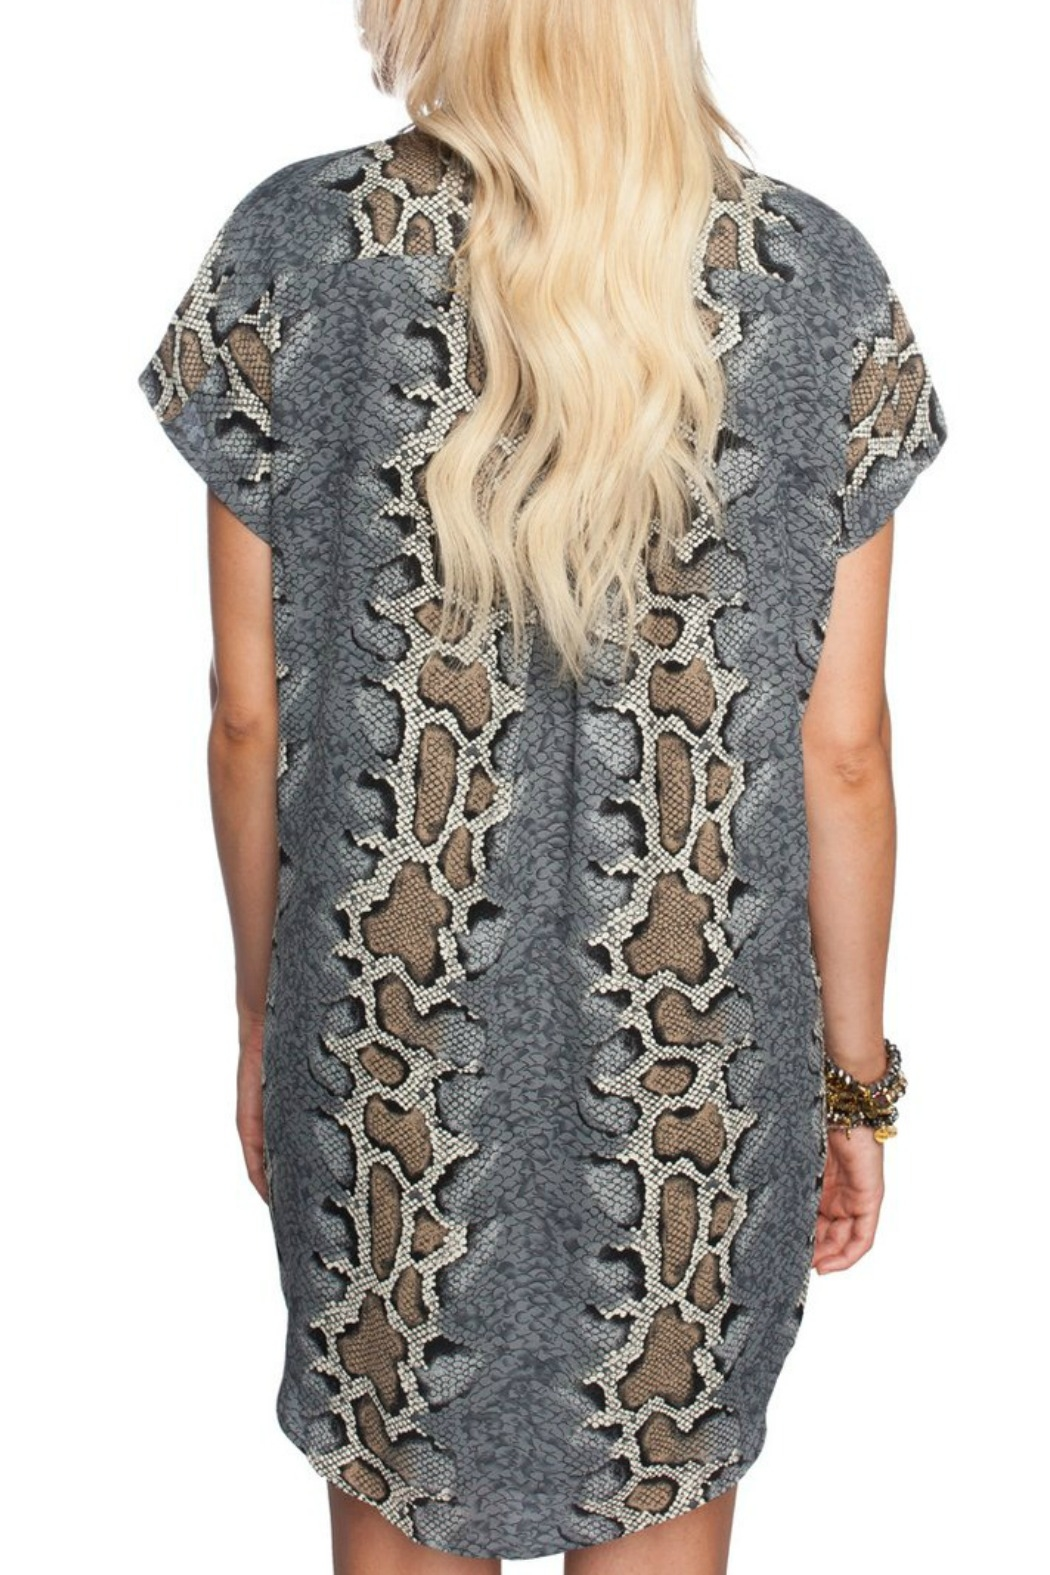 e8339a8ba0 Buddy Love Python Print Dress from Louisiana by Bella Bella - Bocage ...